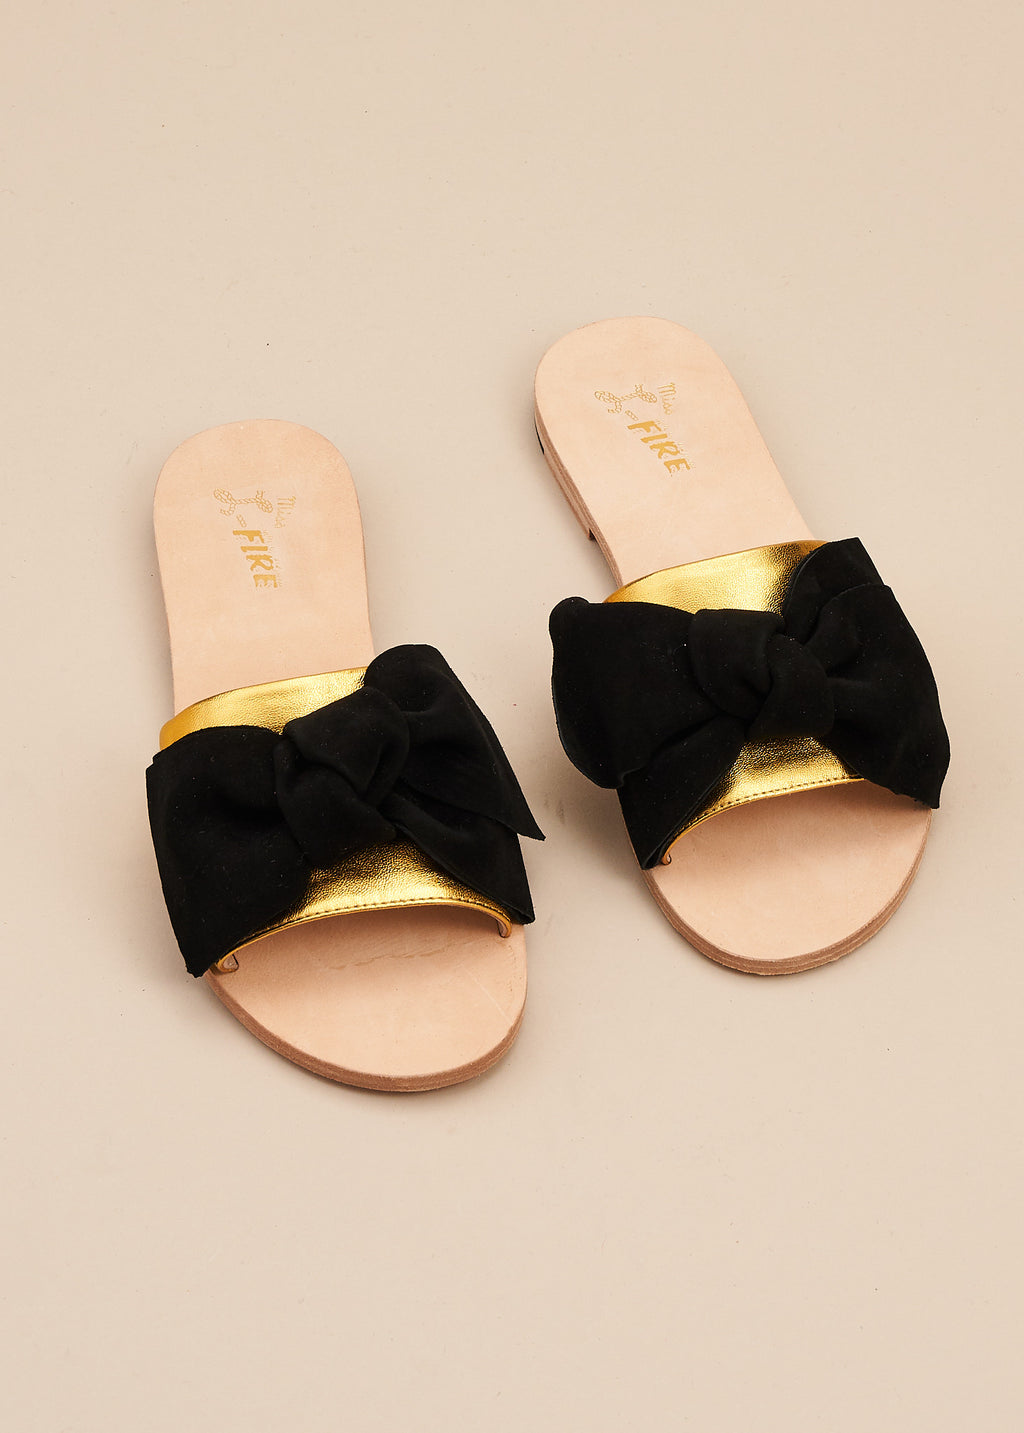 Serafina Gold and Black Bow Detail Flat Sandal - EXCLUSIVE COLOR